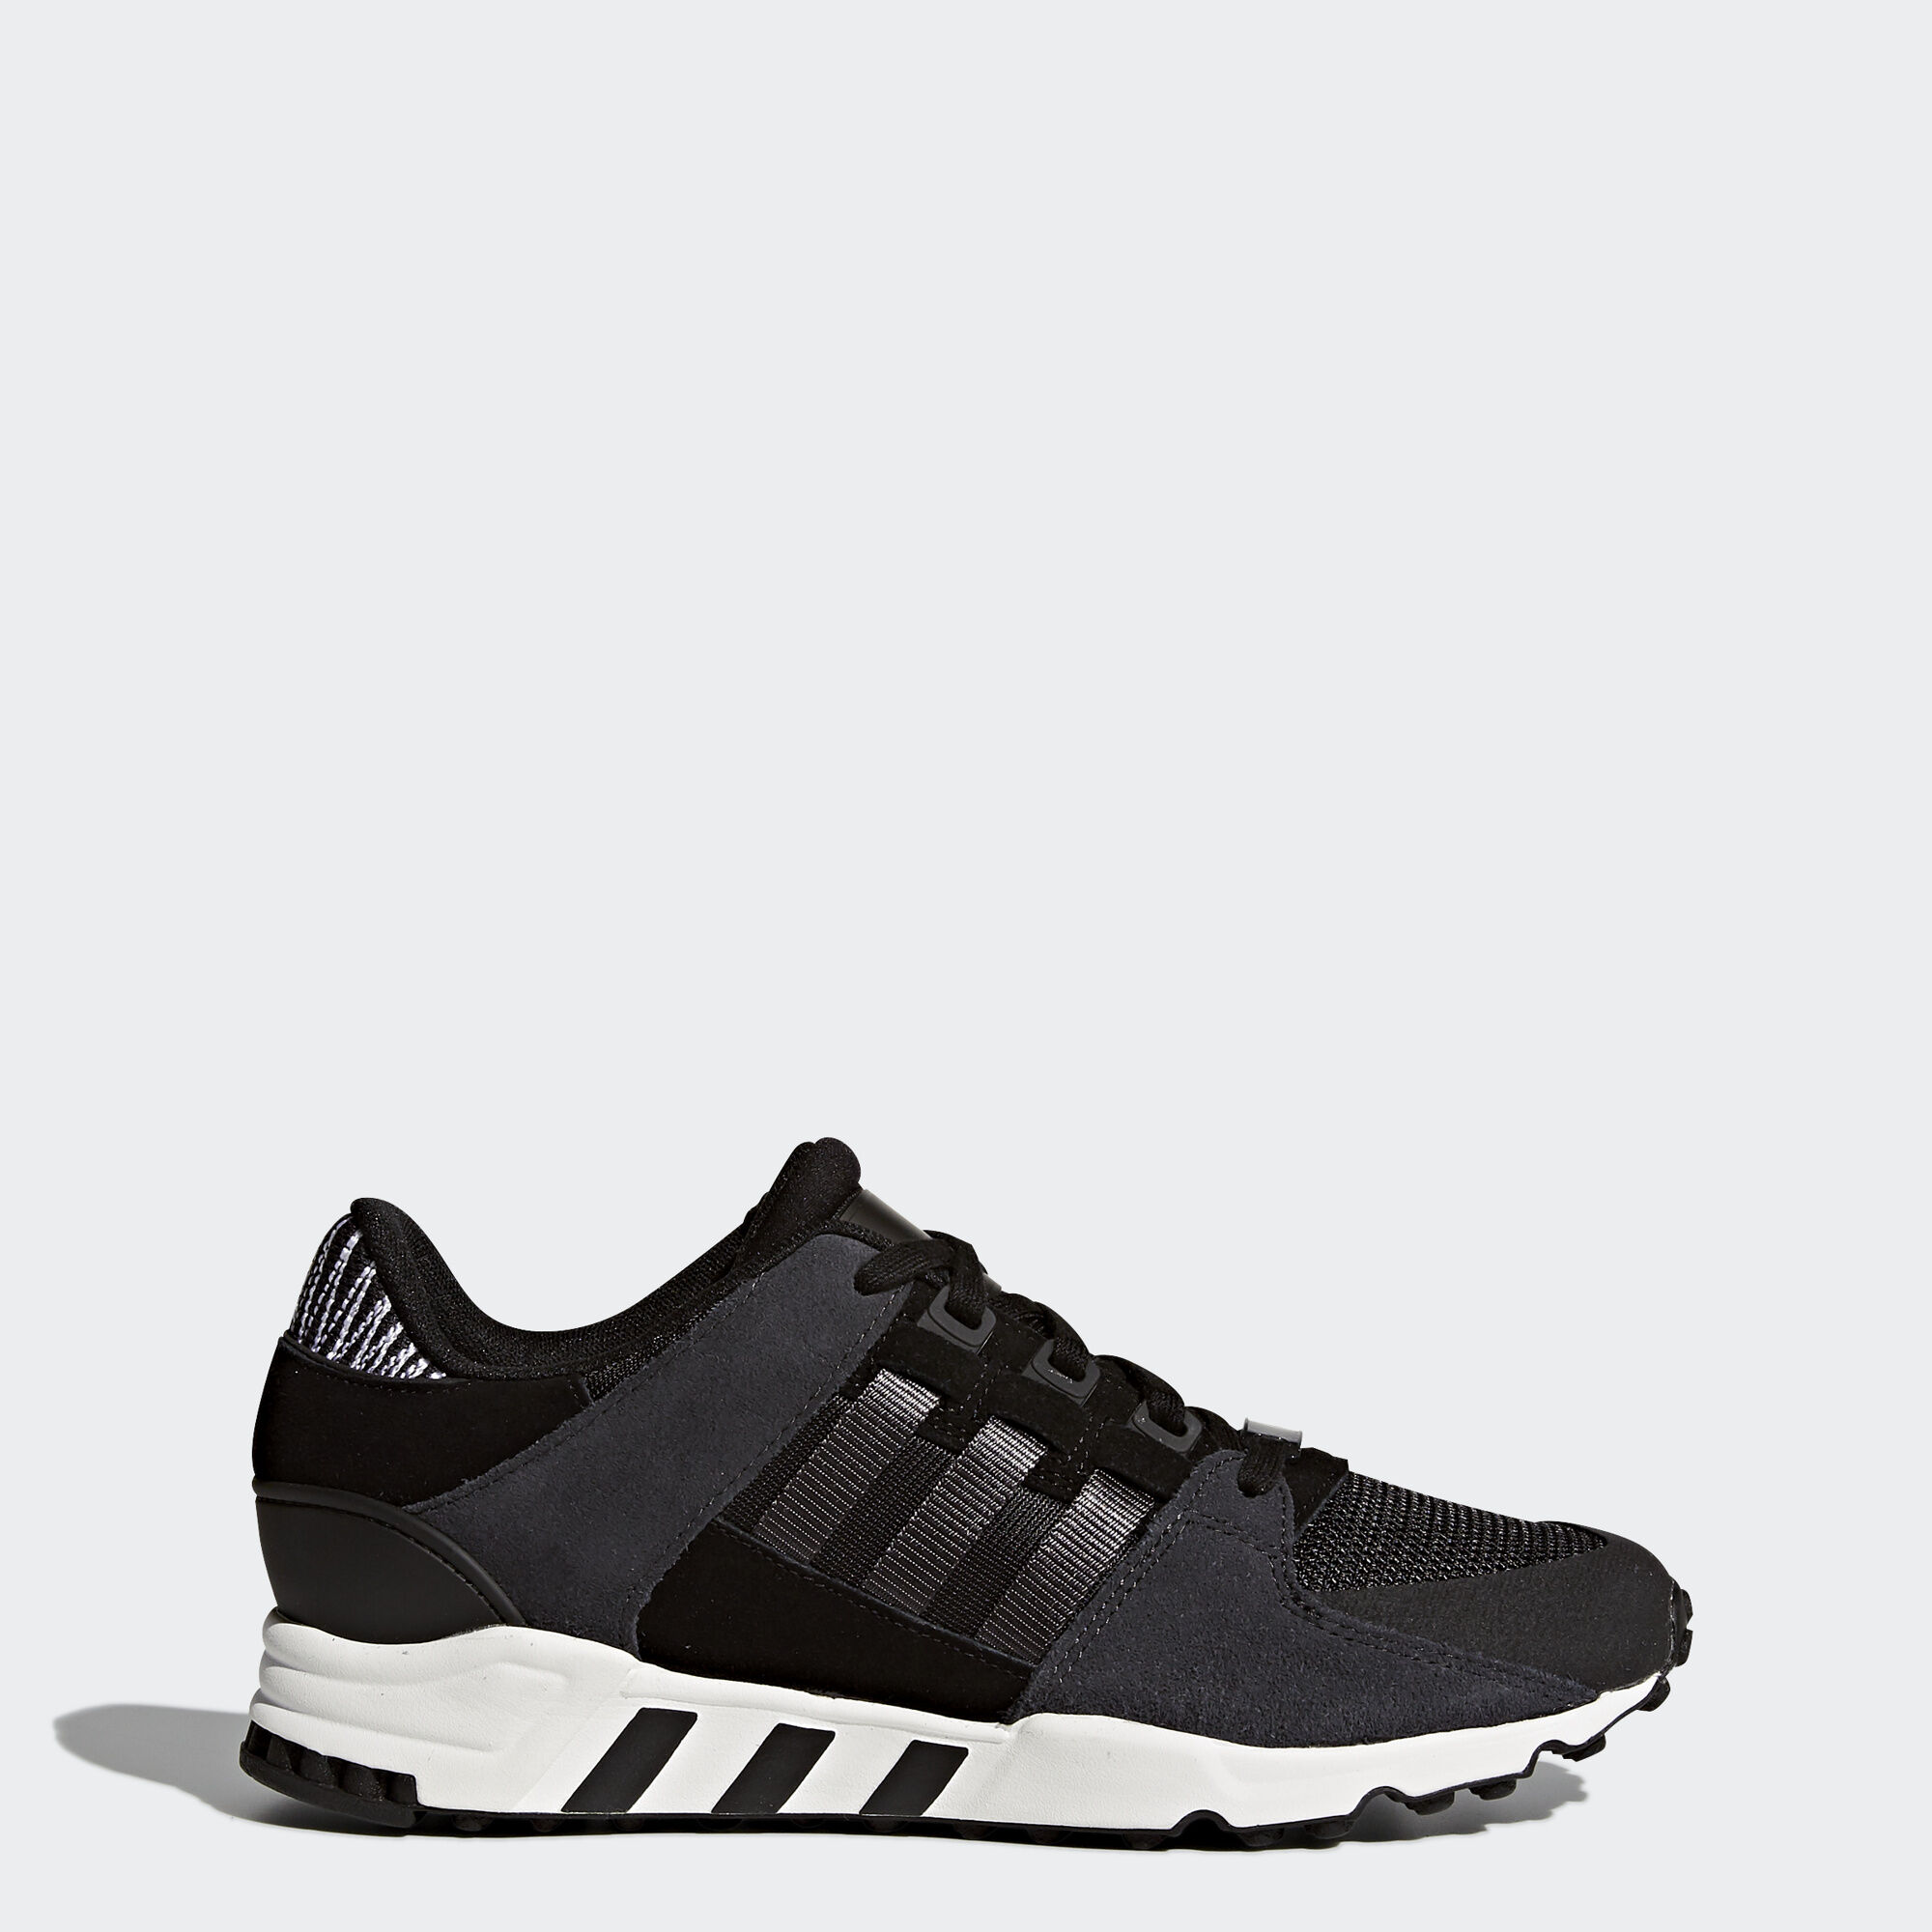 EQT Support Ultra PK from the S/S2017 Adidas Equipment collection